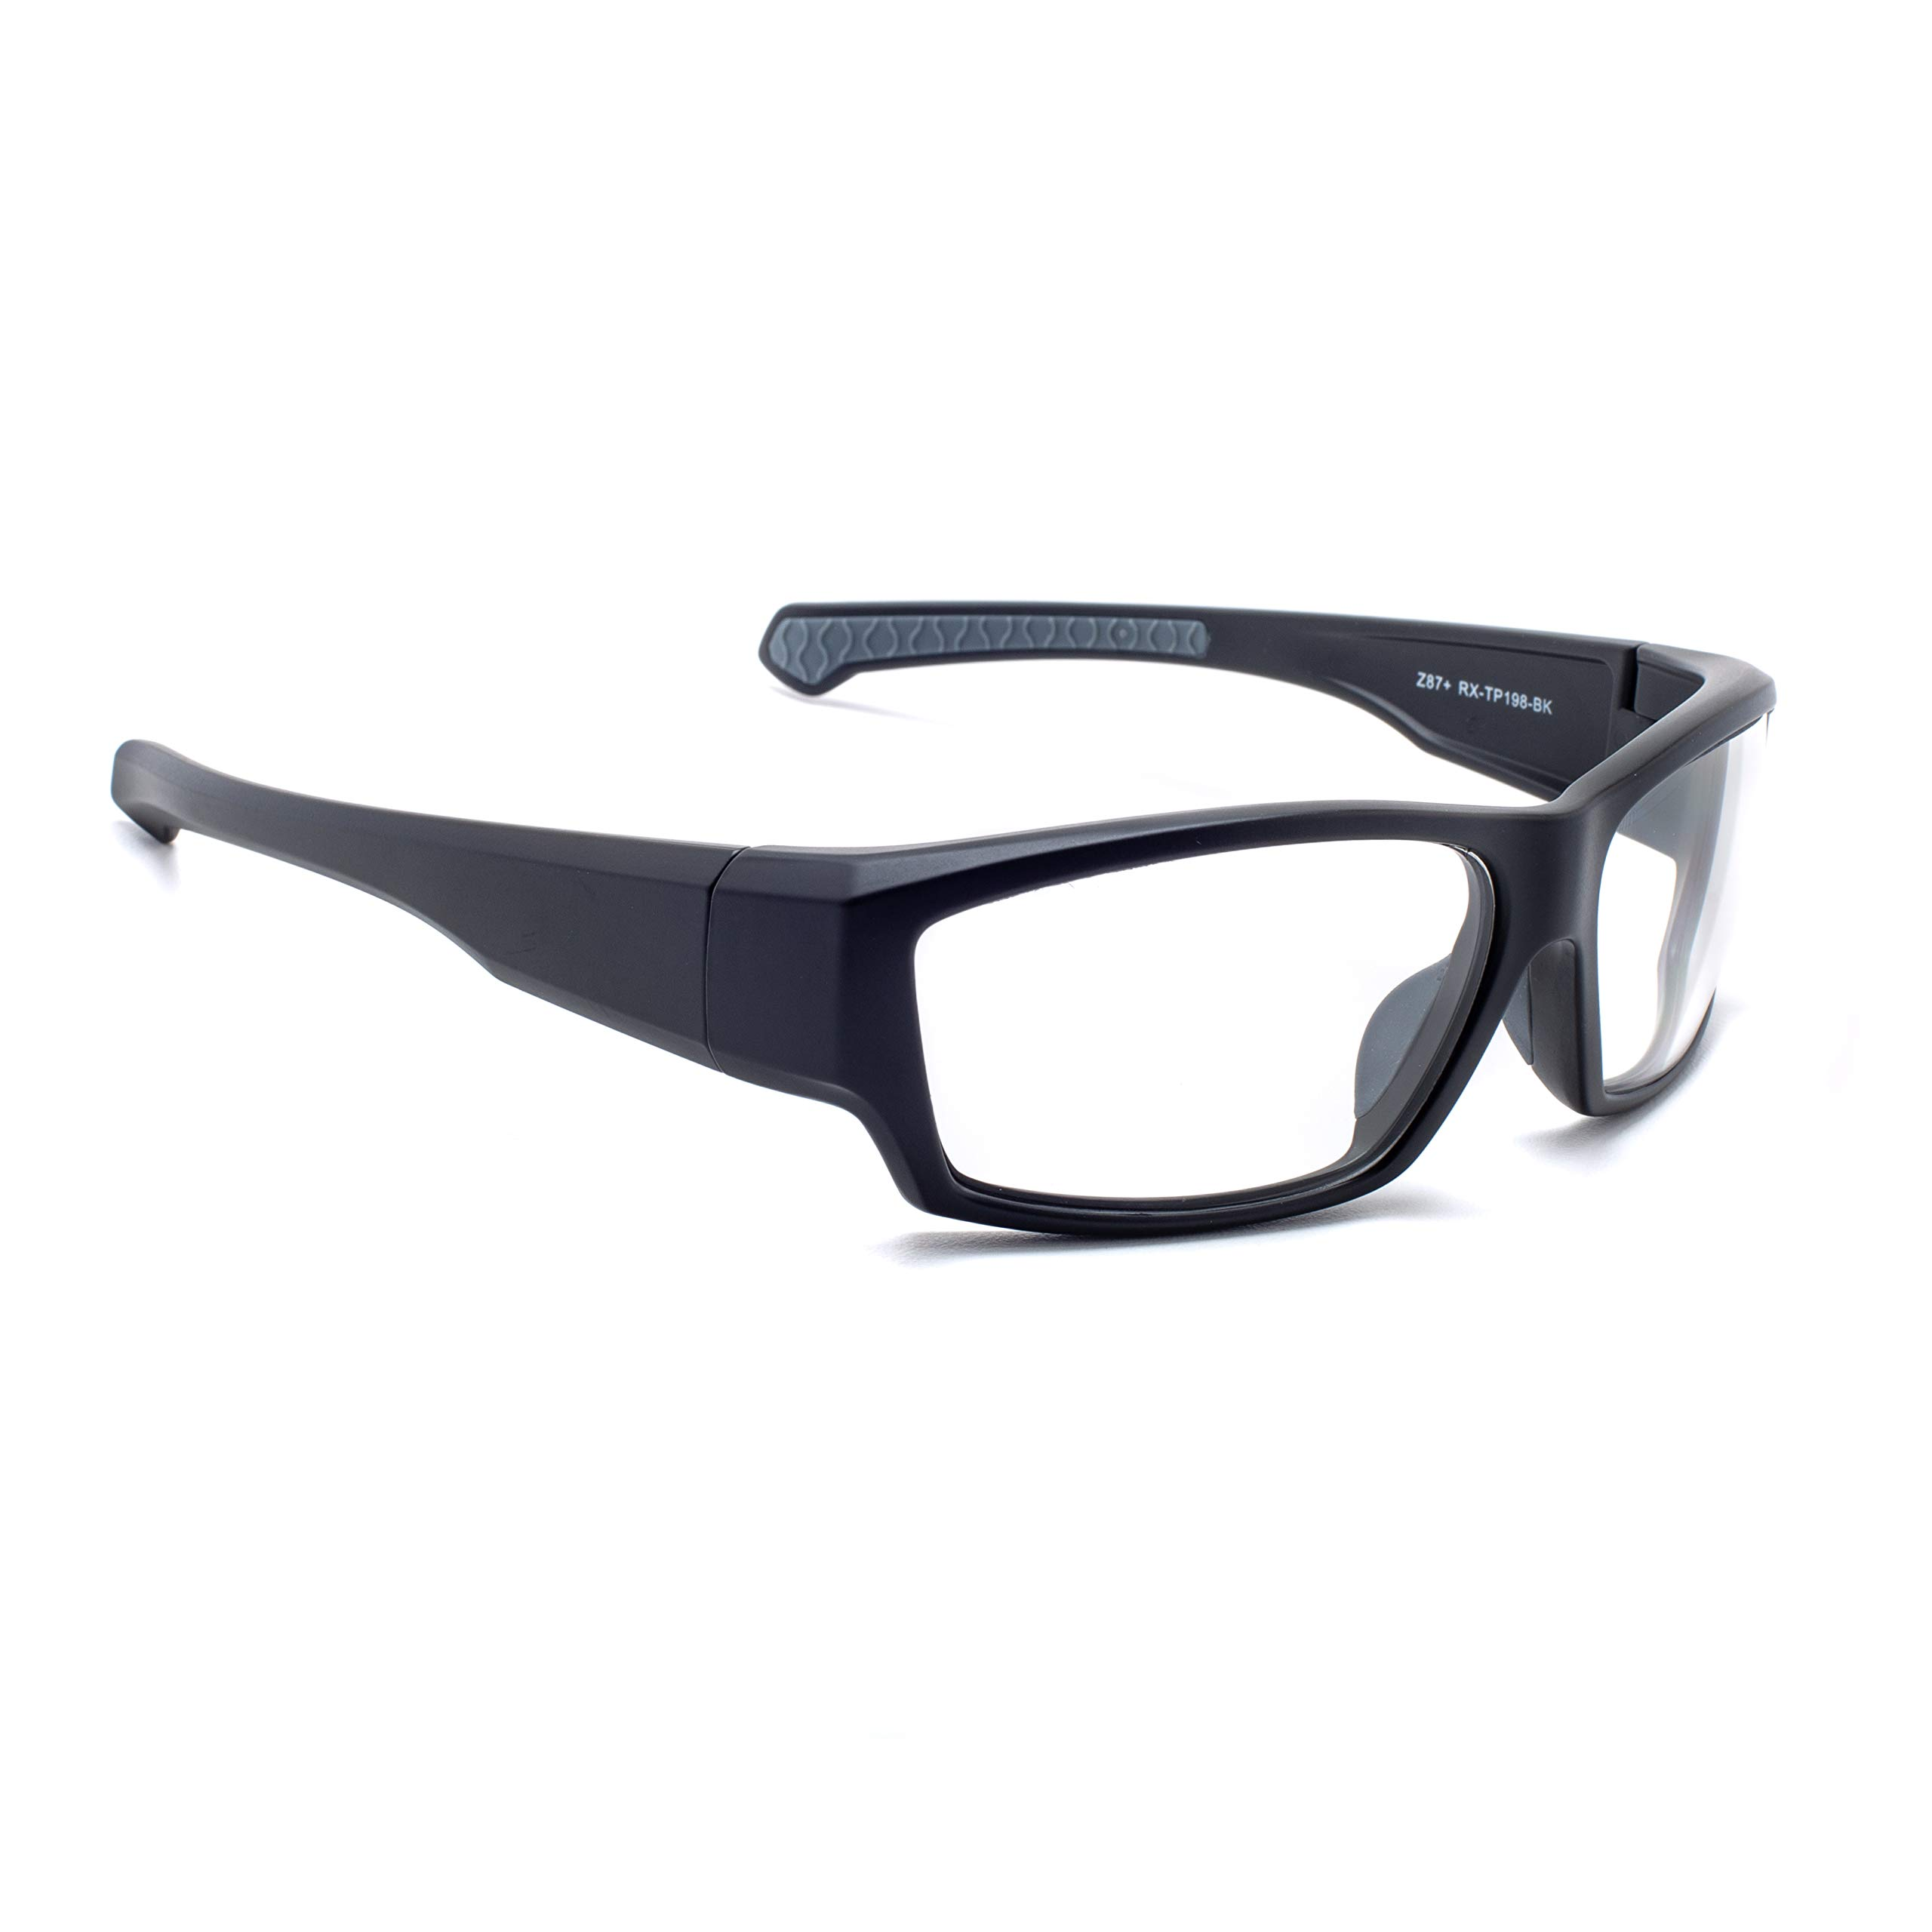 Leaded Glasses Radiation Protective Eyewear RG-TP198-BK by Phillips Safety Products, Inc